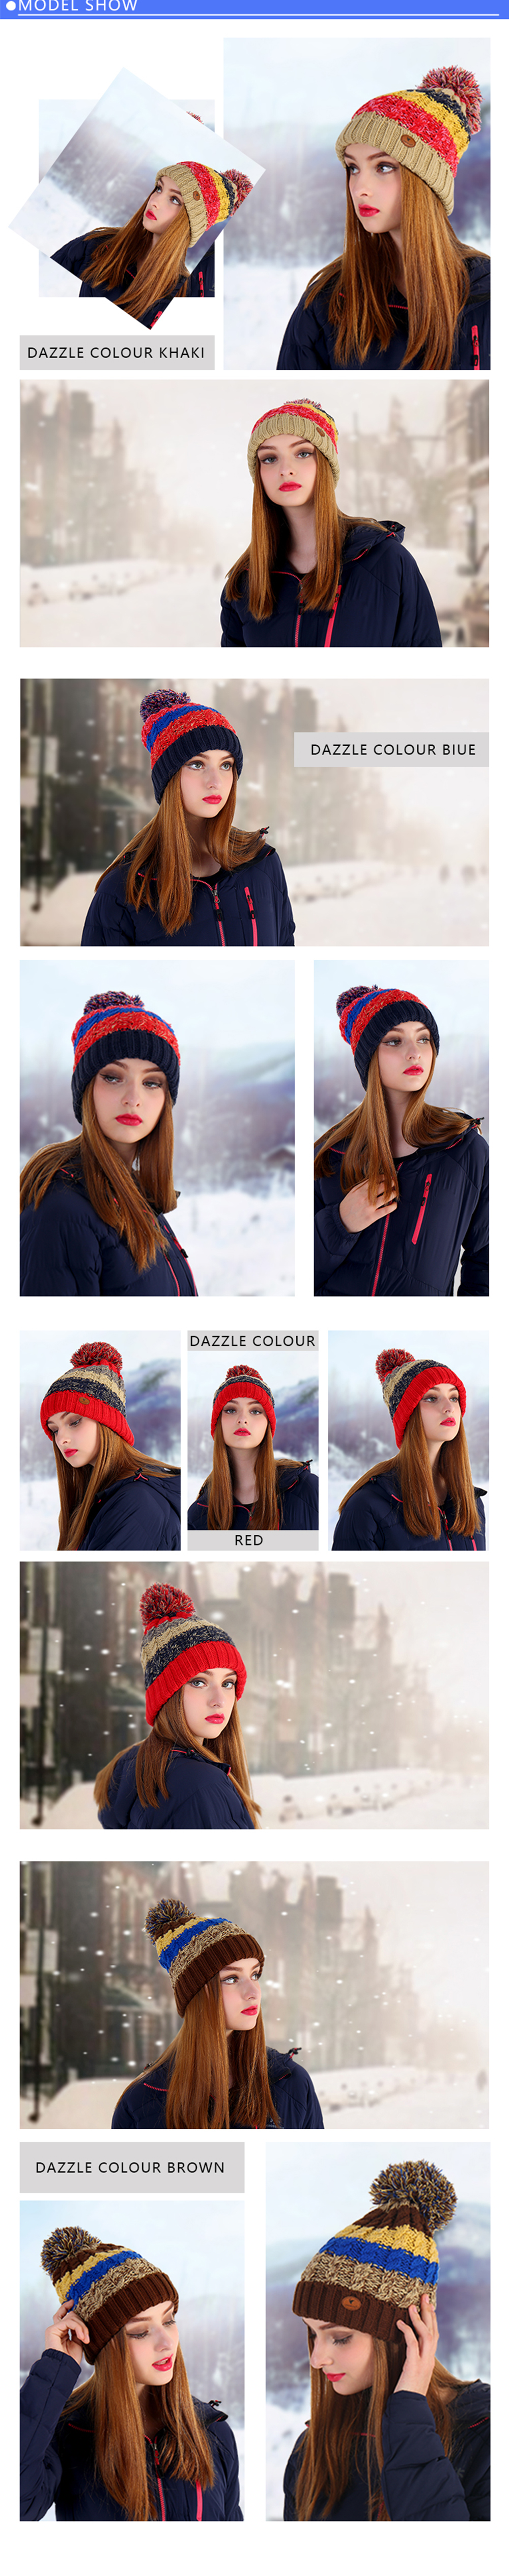 fa07d1d2faf VEPEAL Winter Women S Outdoor Keep Warm Fur Ball Color Matching Knitted Hat-  Dark Slate Blue